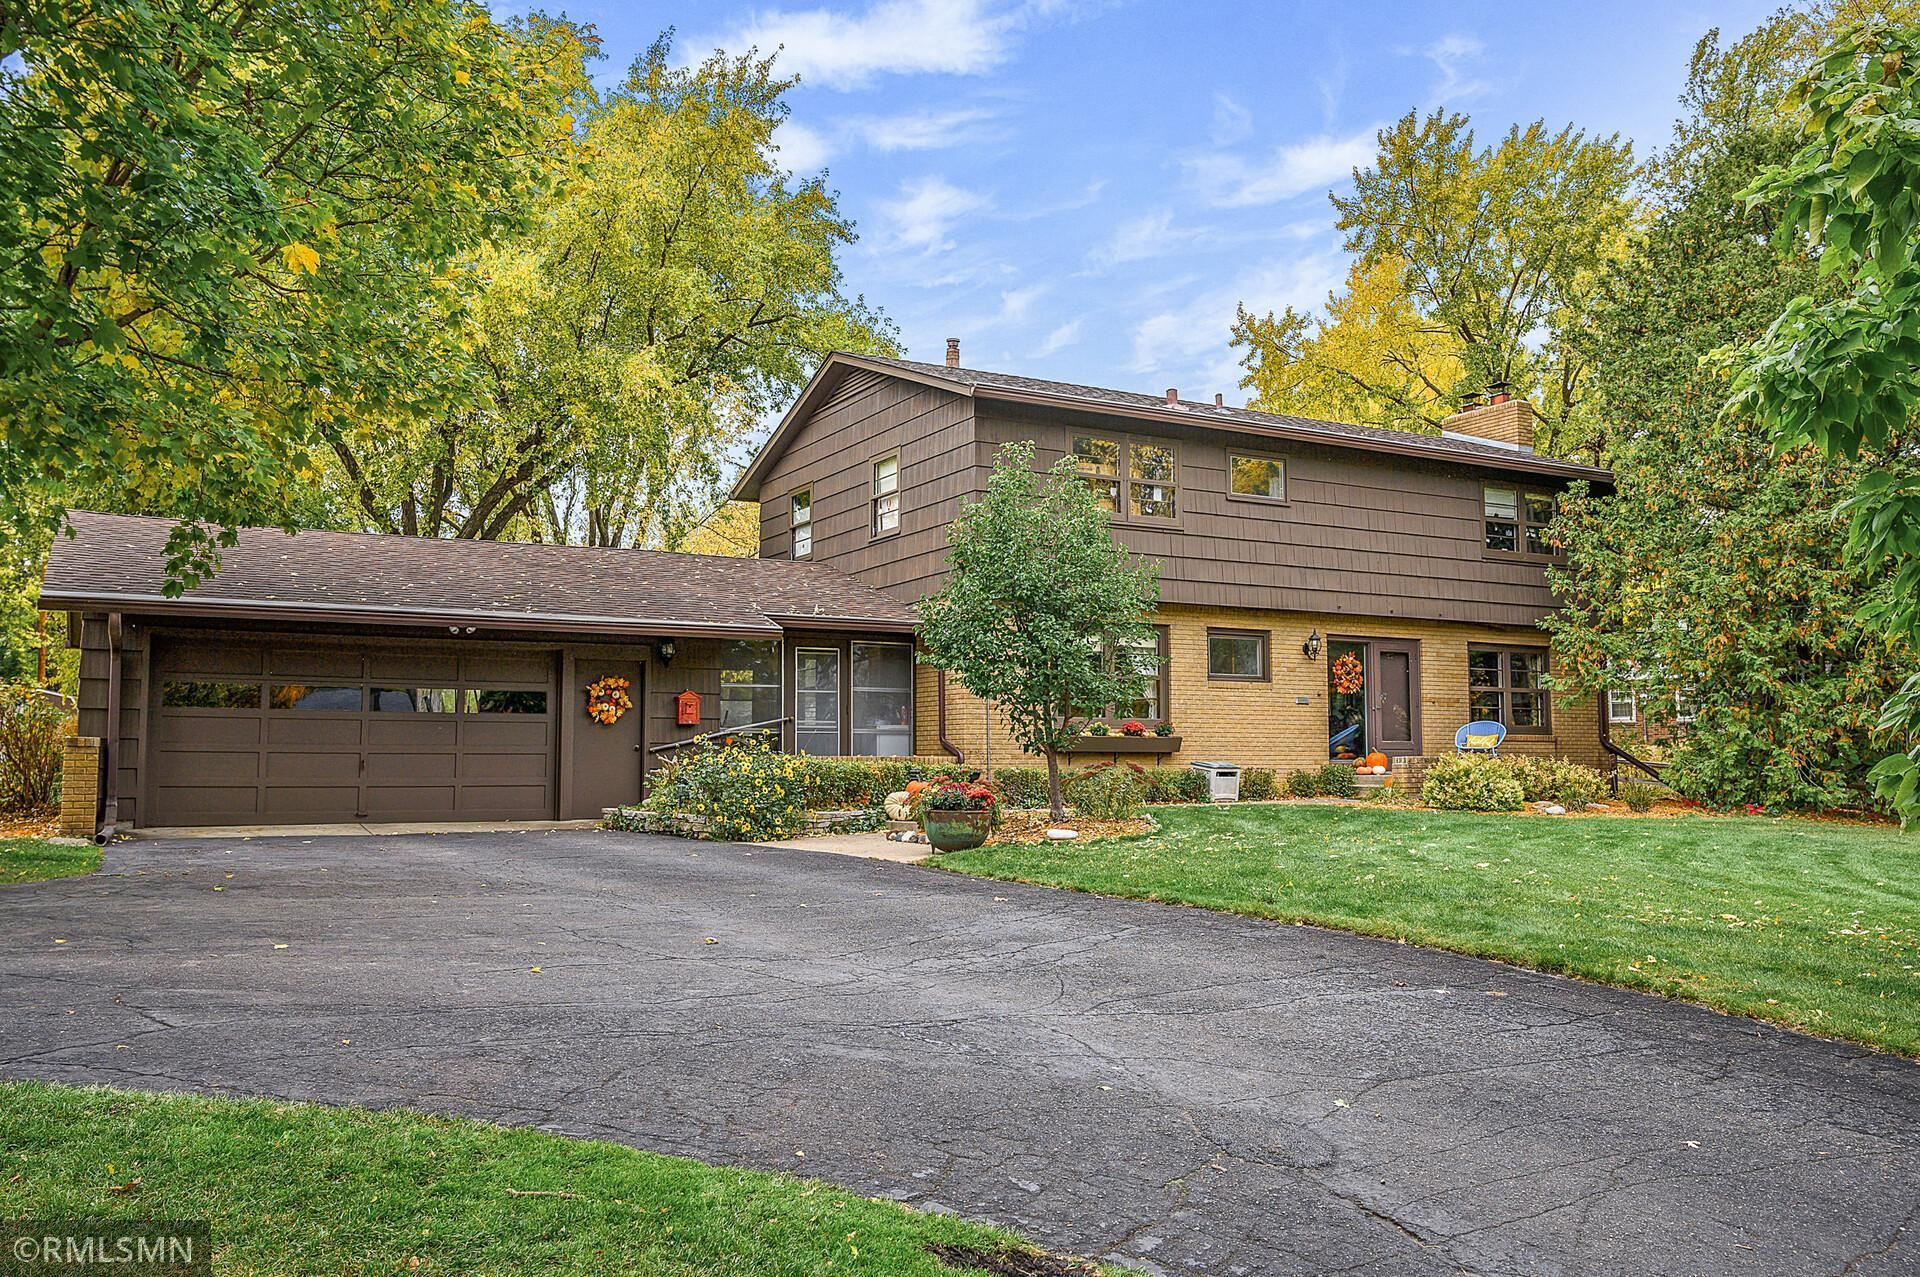 348 Campbell Drive, Hopkins, MN 55343 - MLS#: 5678241